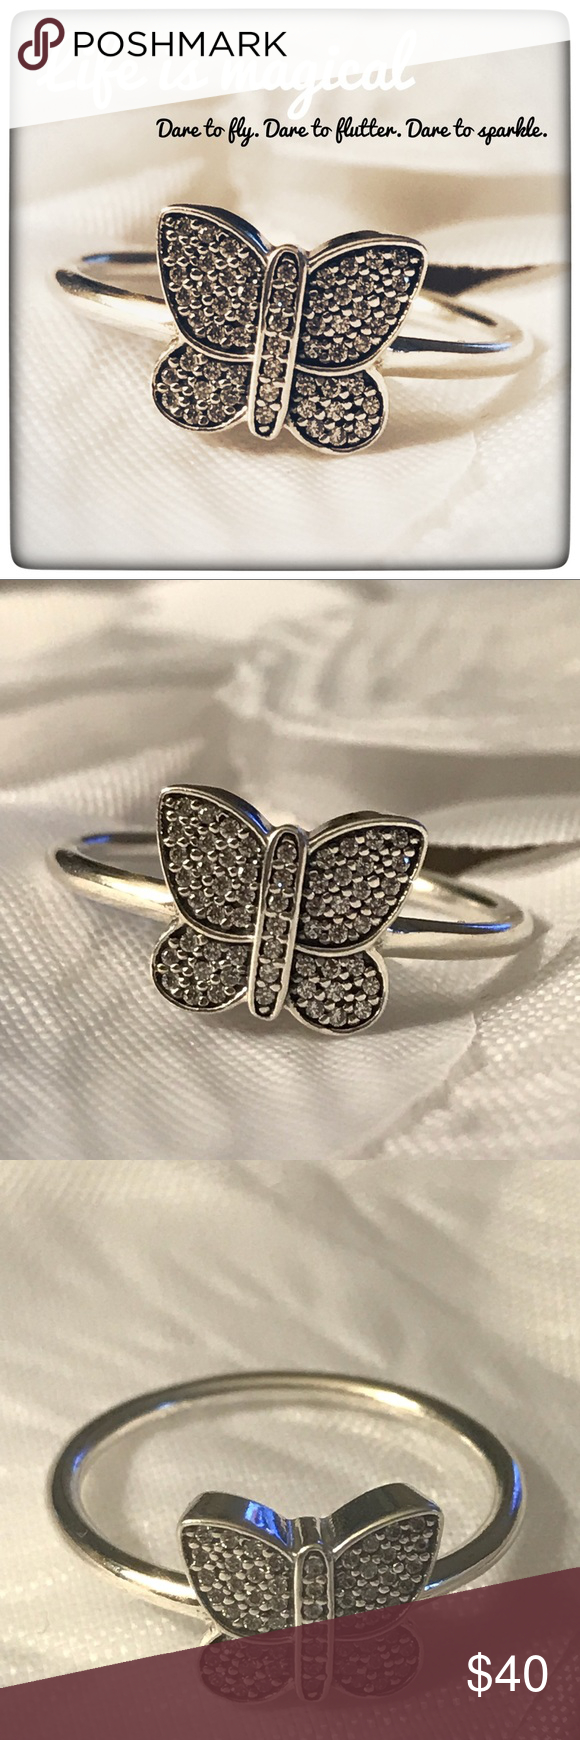 Pandora Sparkling Butterfly Ring, Clear Cz Butterfly Ring In For Most Up To Date Sparkling Butterfly Rings (View 8 of 25)